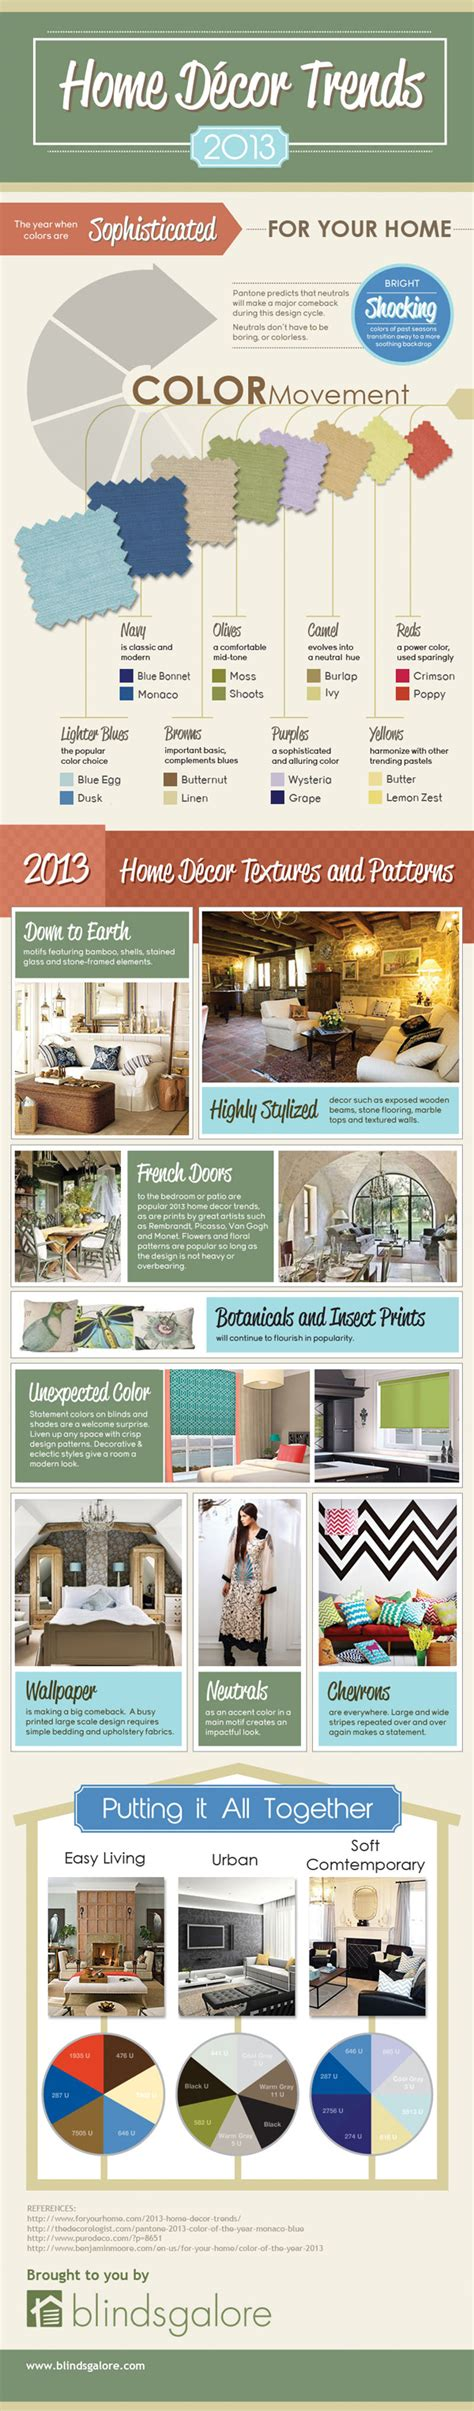 latest home design trends 2013 home decor trends for 2013 infographic